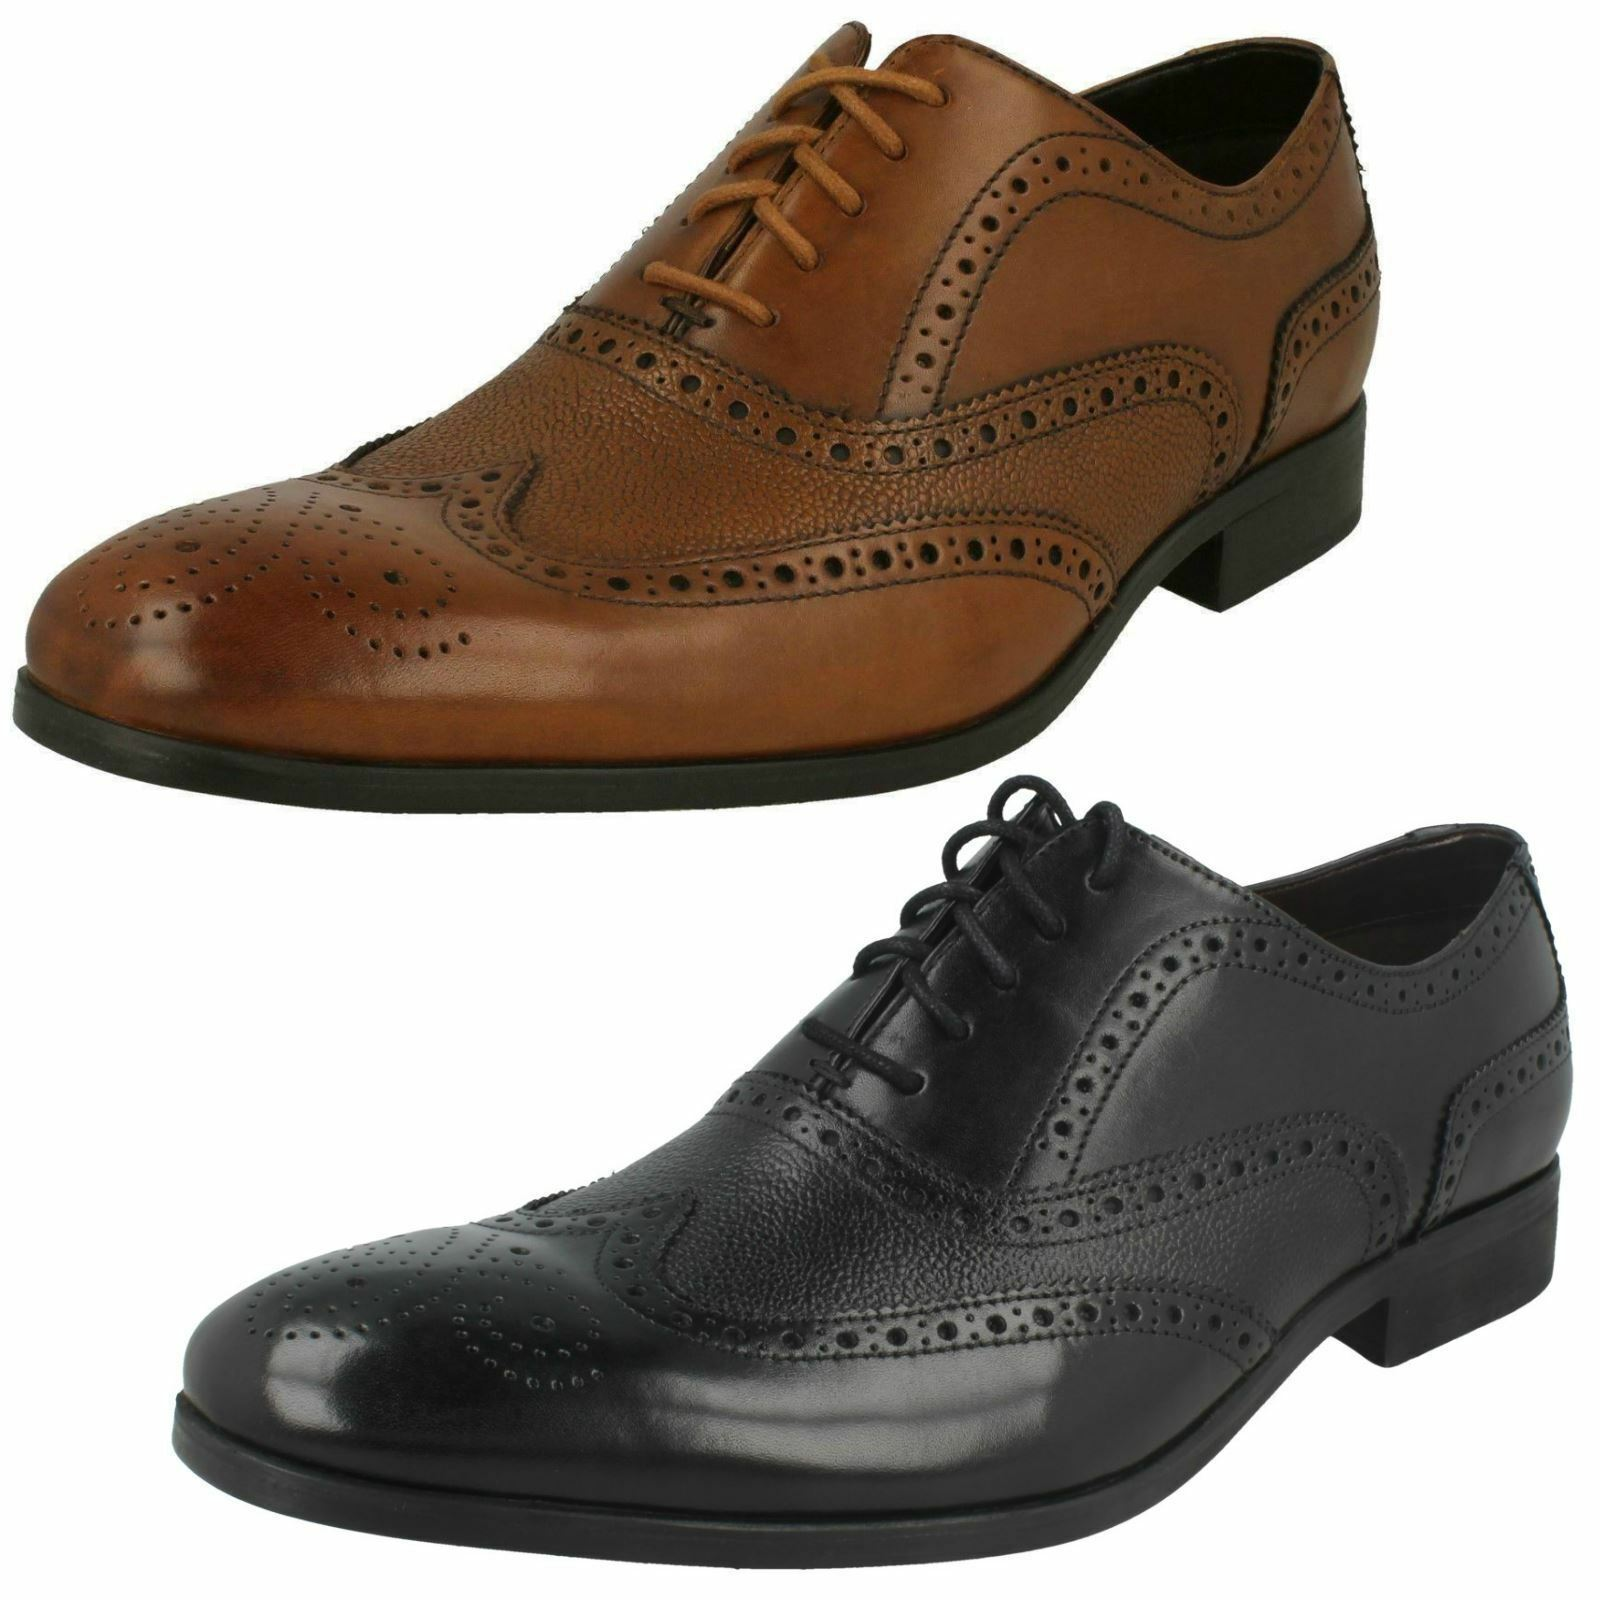 Mens Gilmore Limit leather Brogue shoes G-Fitting by Clarks